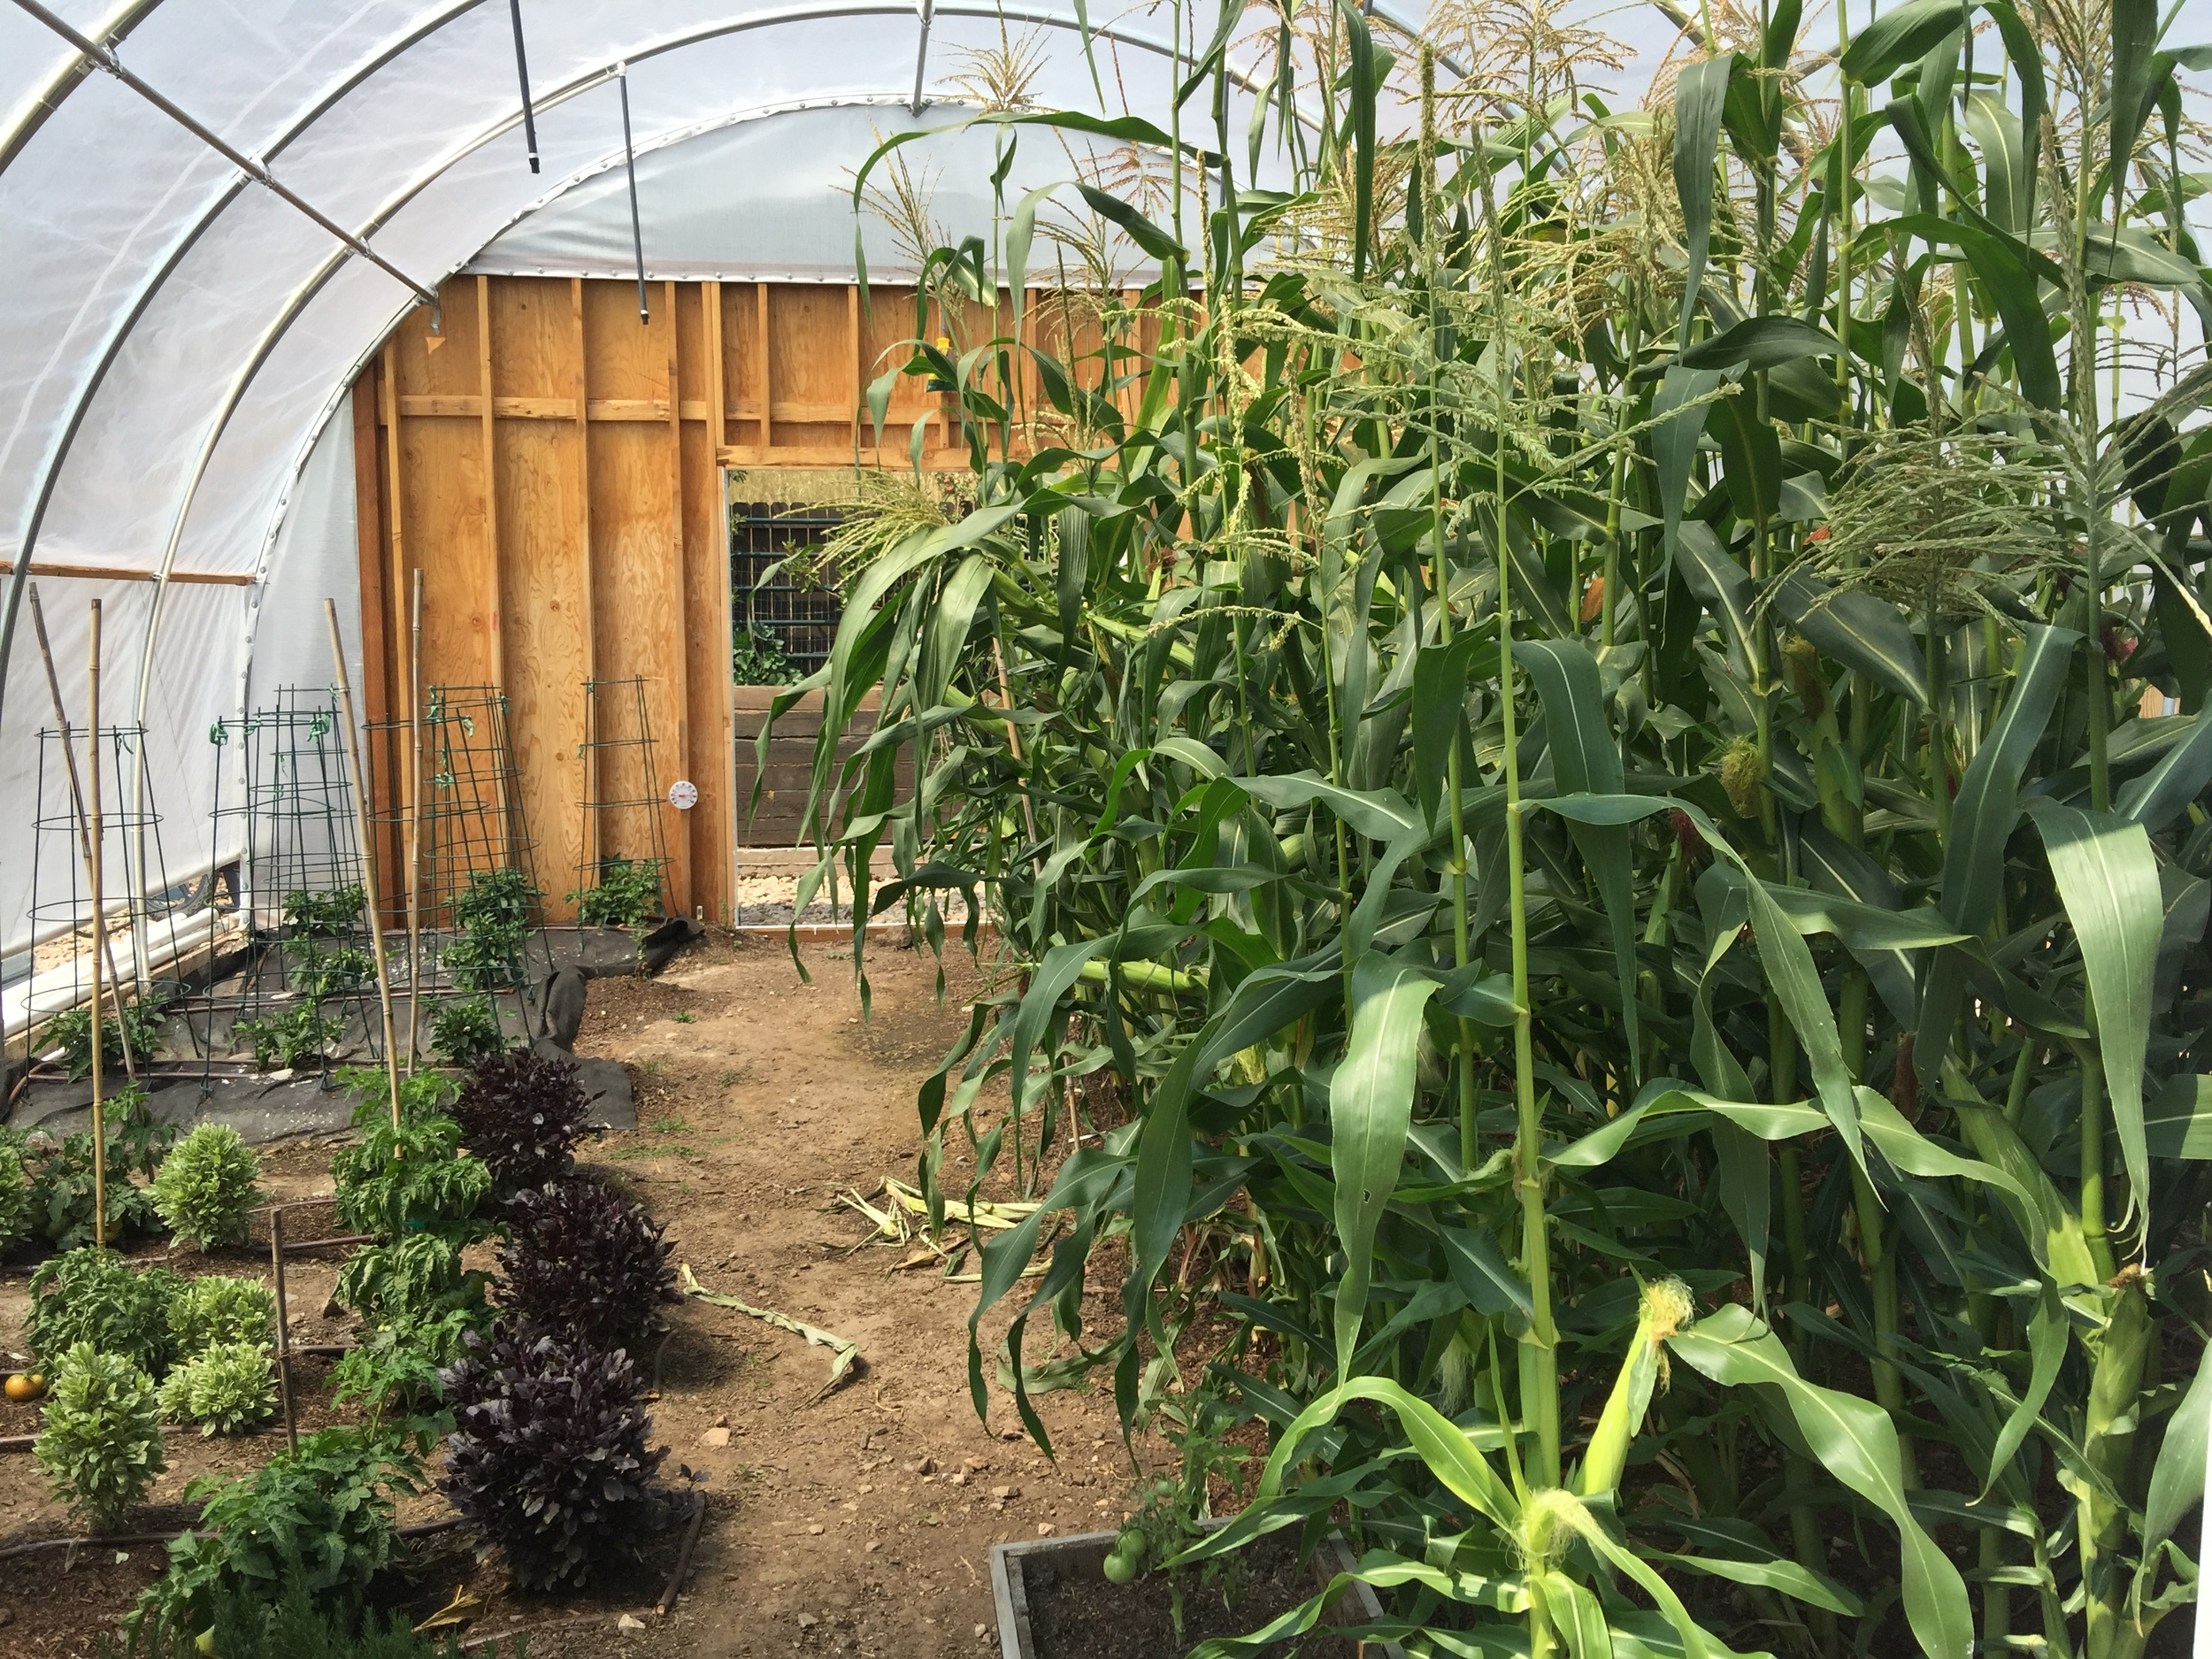 Corn and veggies growing in the greenhouse